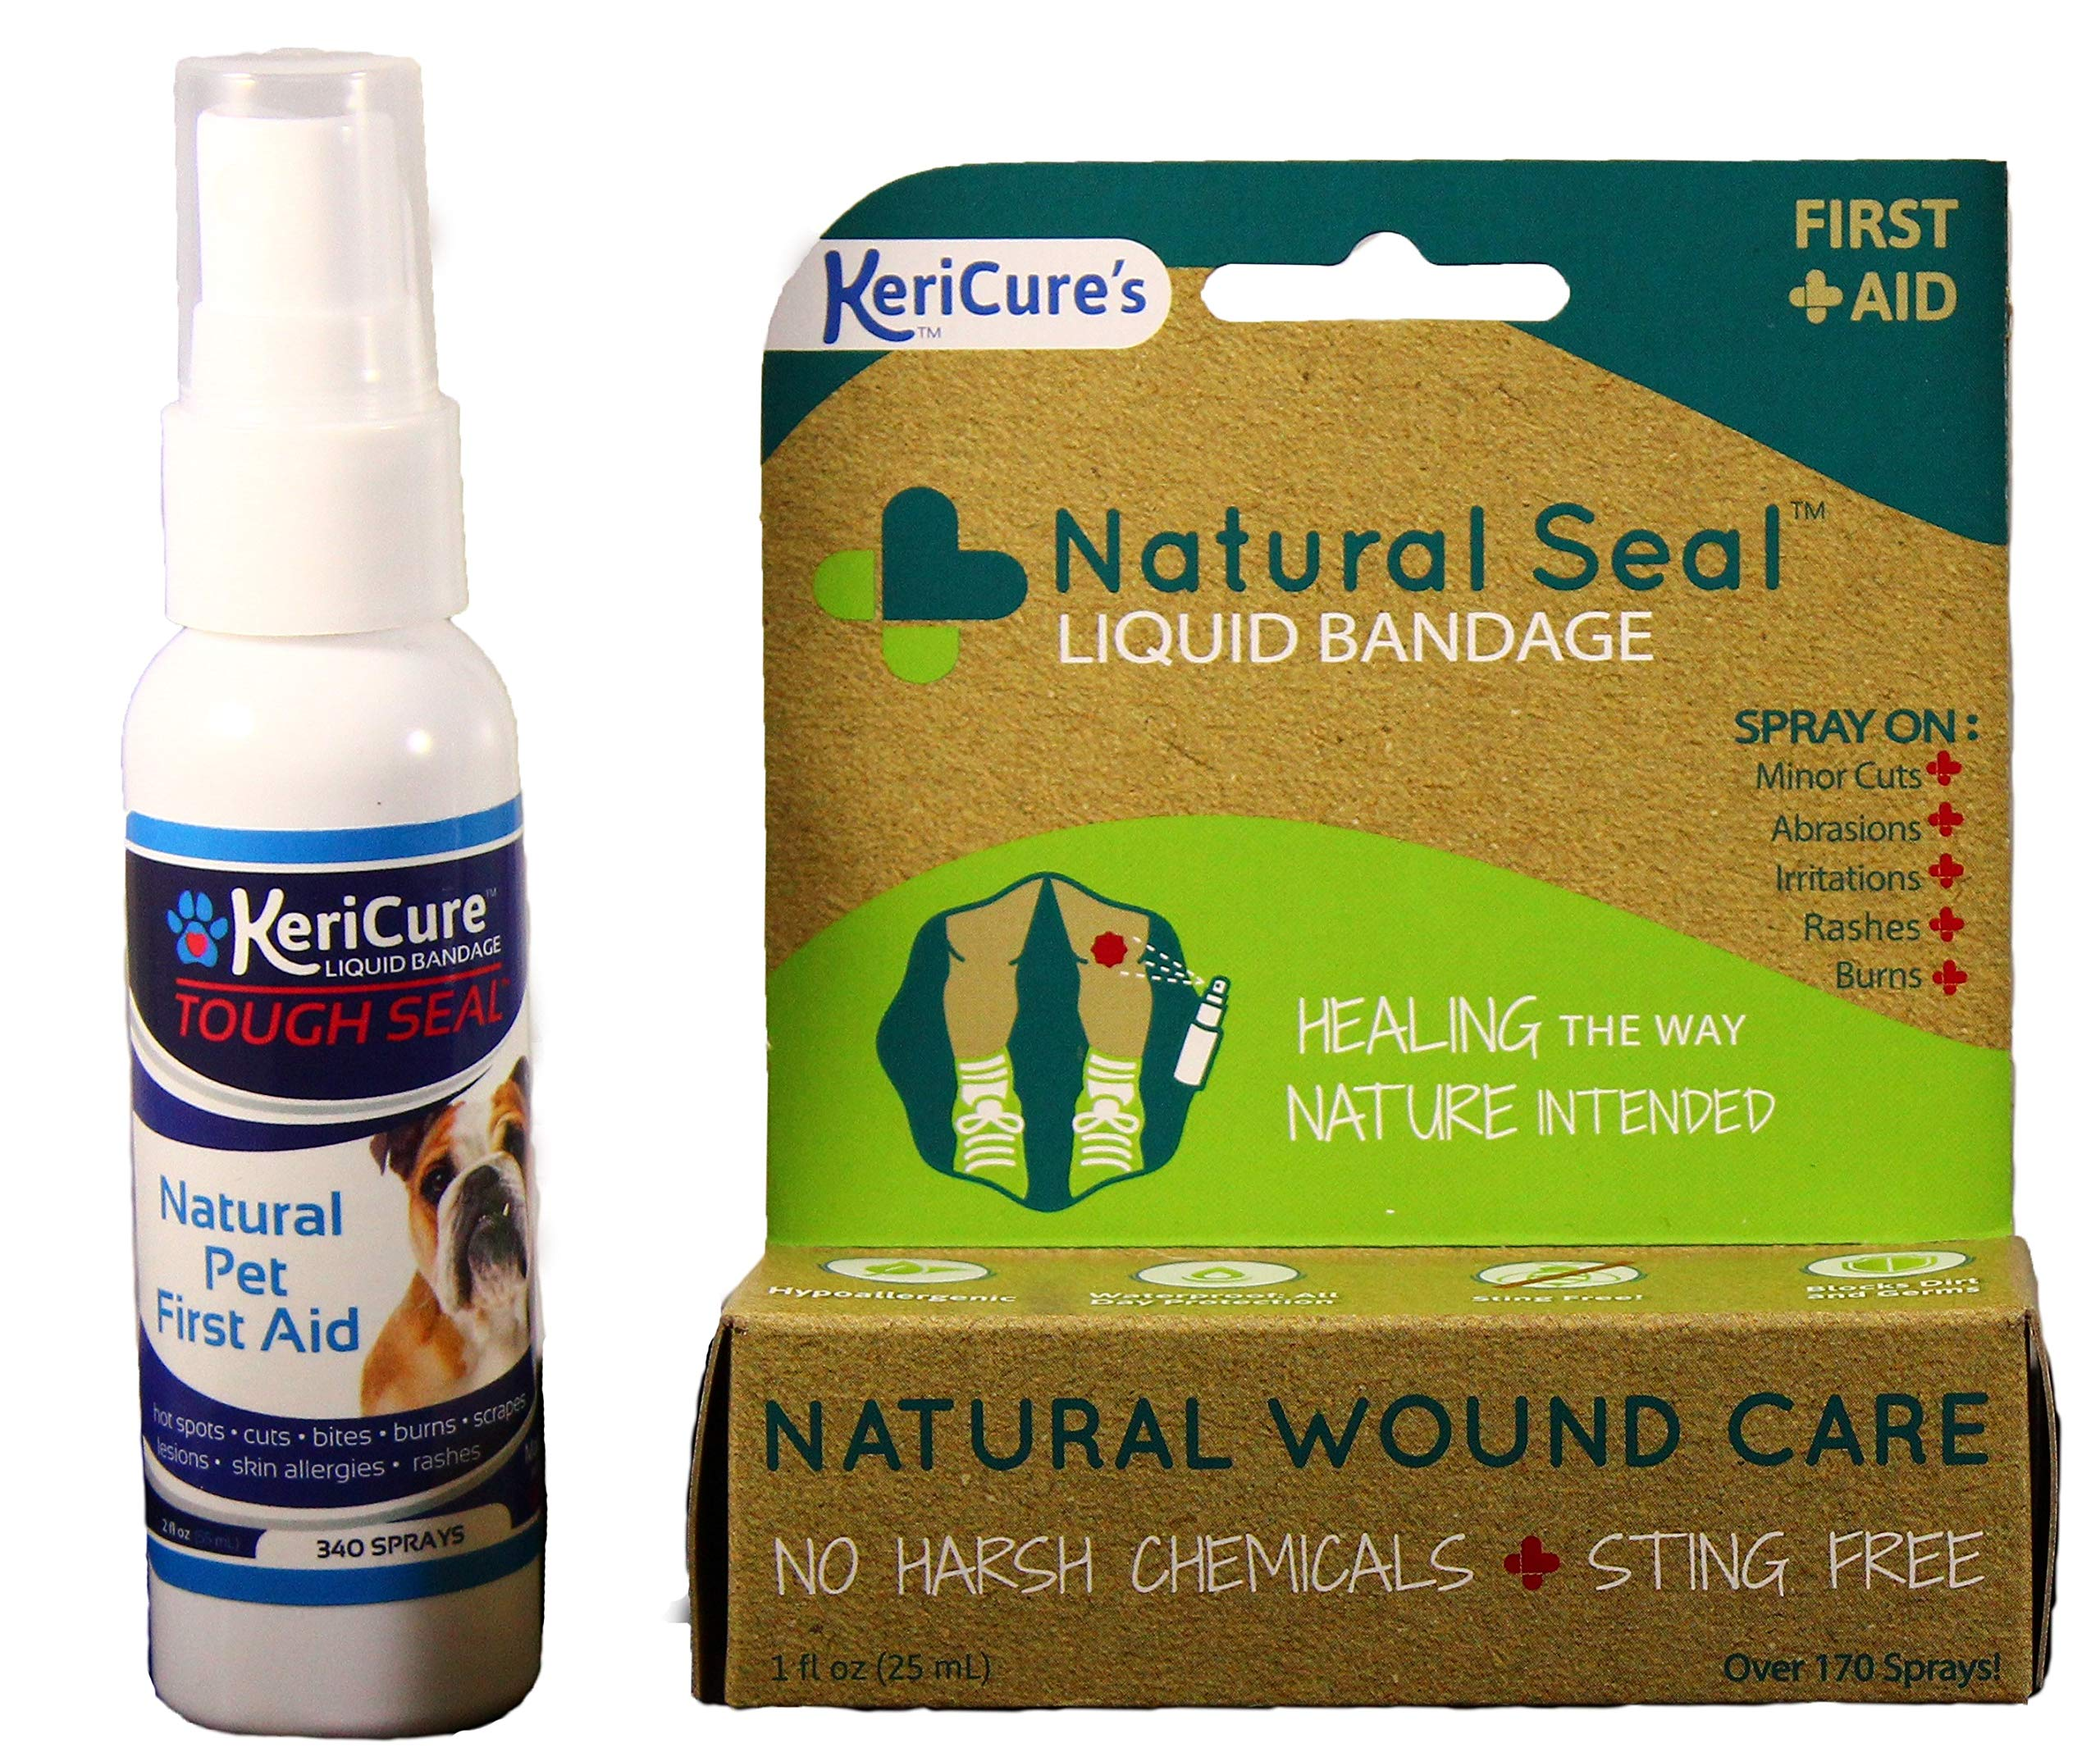 Natural Seal and Tough Seal Spray on Liquid Bandage Products for People and Pets Combo Pack, 2 Pack, One for you and one for your pet, Combine and Save, Sting Free Spray on Bandage, No Harsh Chemicals by KeriCure